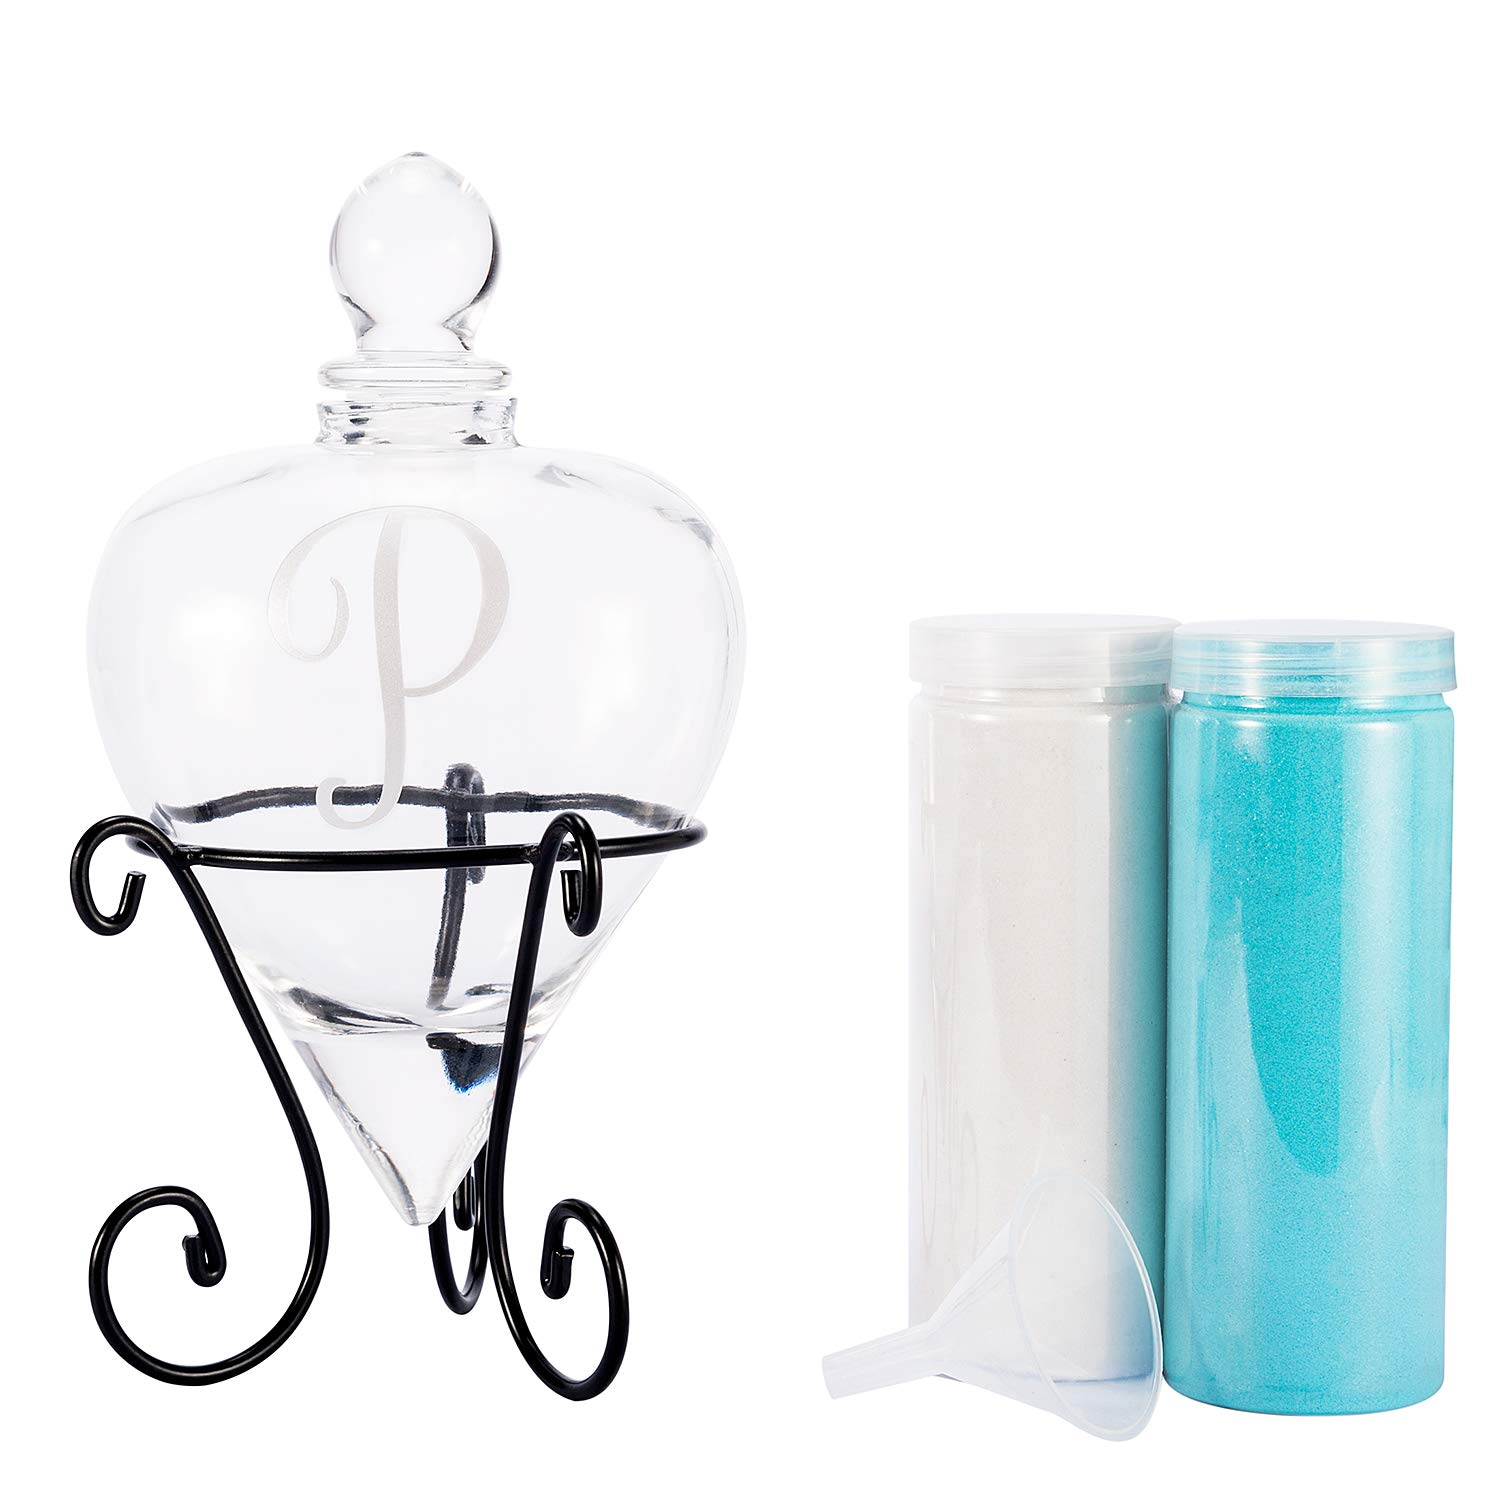 AF ANDREW FAMILY Monogrammed Etched Wedding Glass Heart Shaped Unity Set with Metal Stand-Initial P White& Blue Sand Included